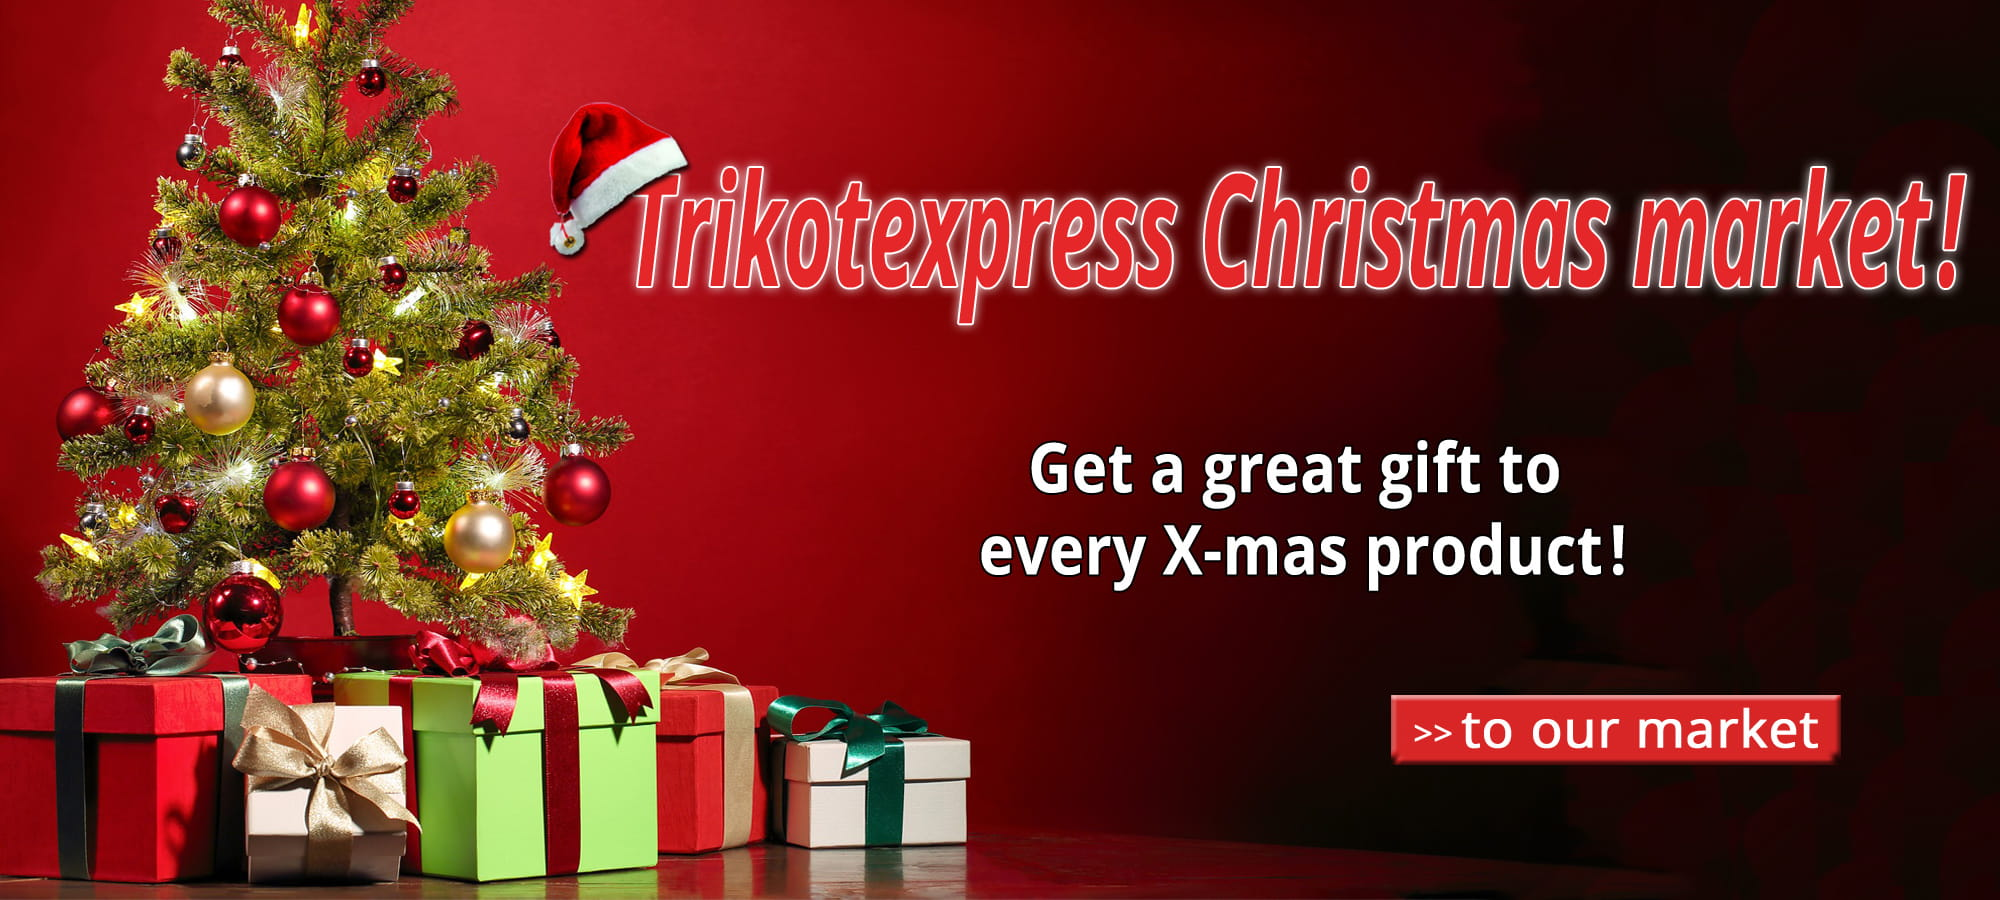 Trikotexpress Christmas Market with a gift to every product